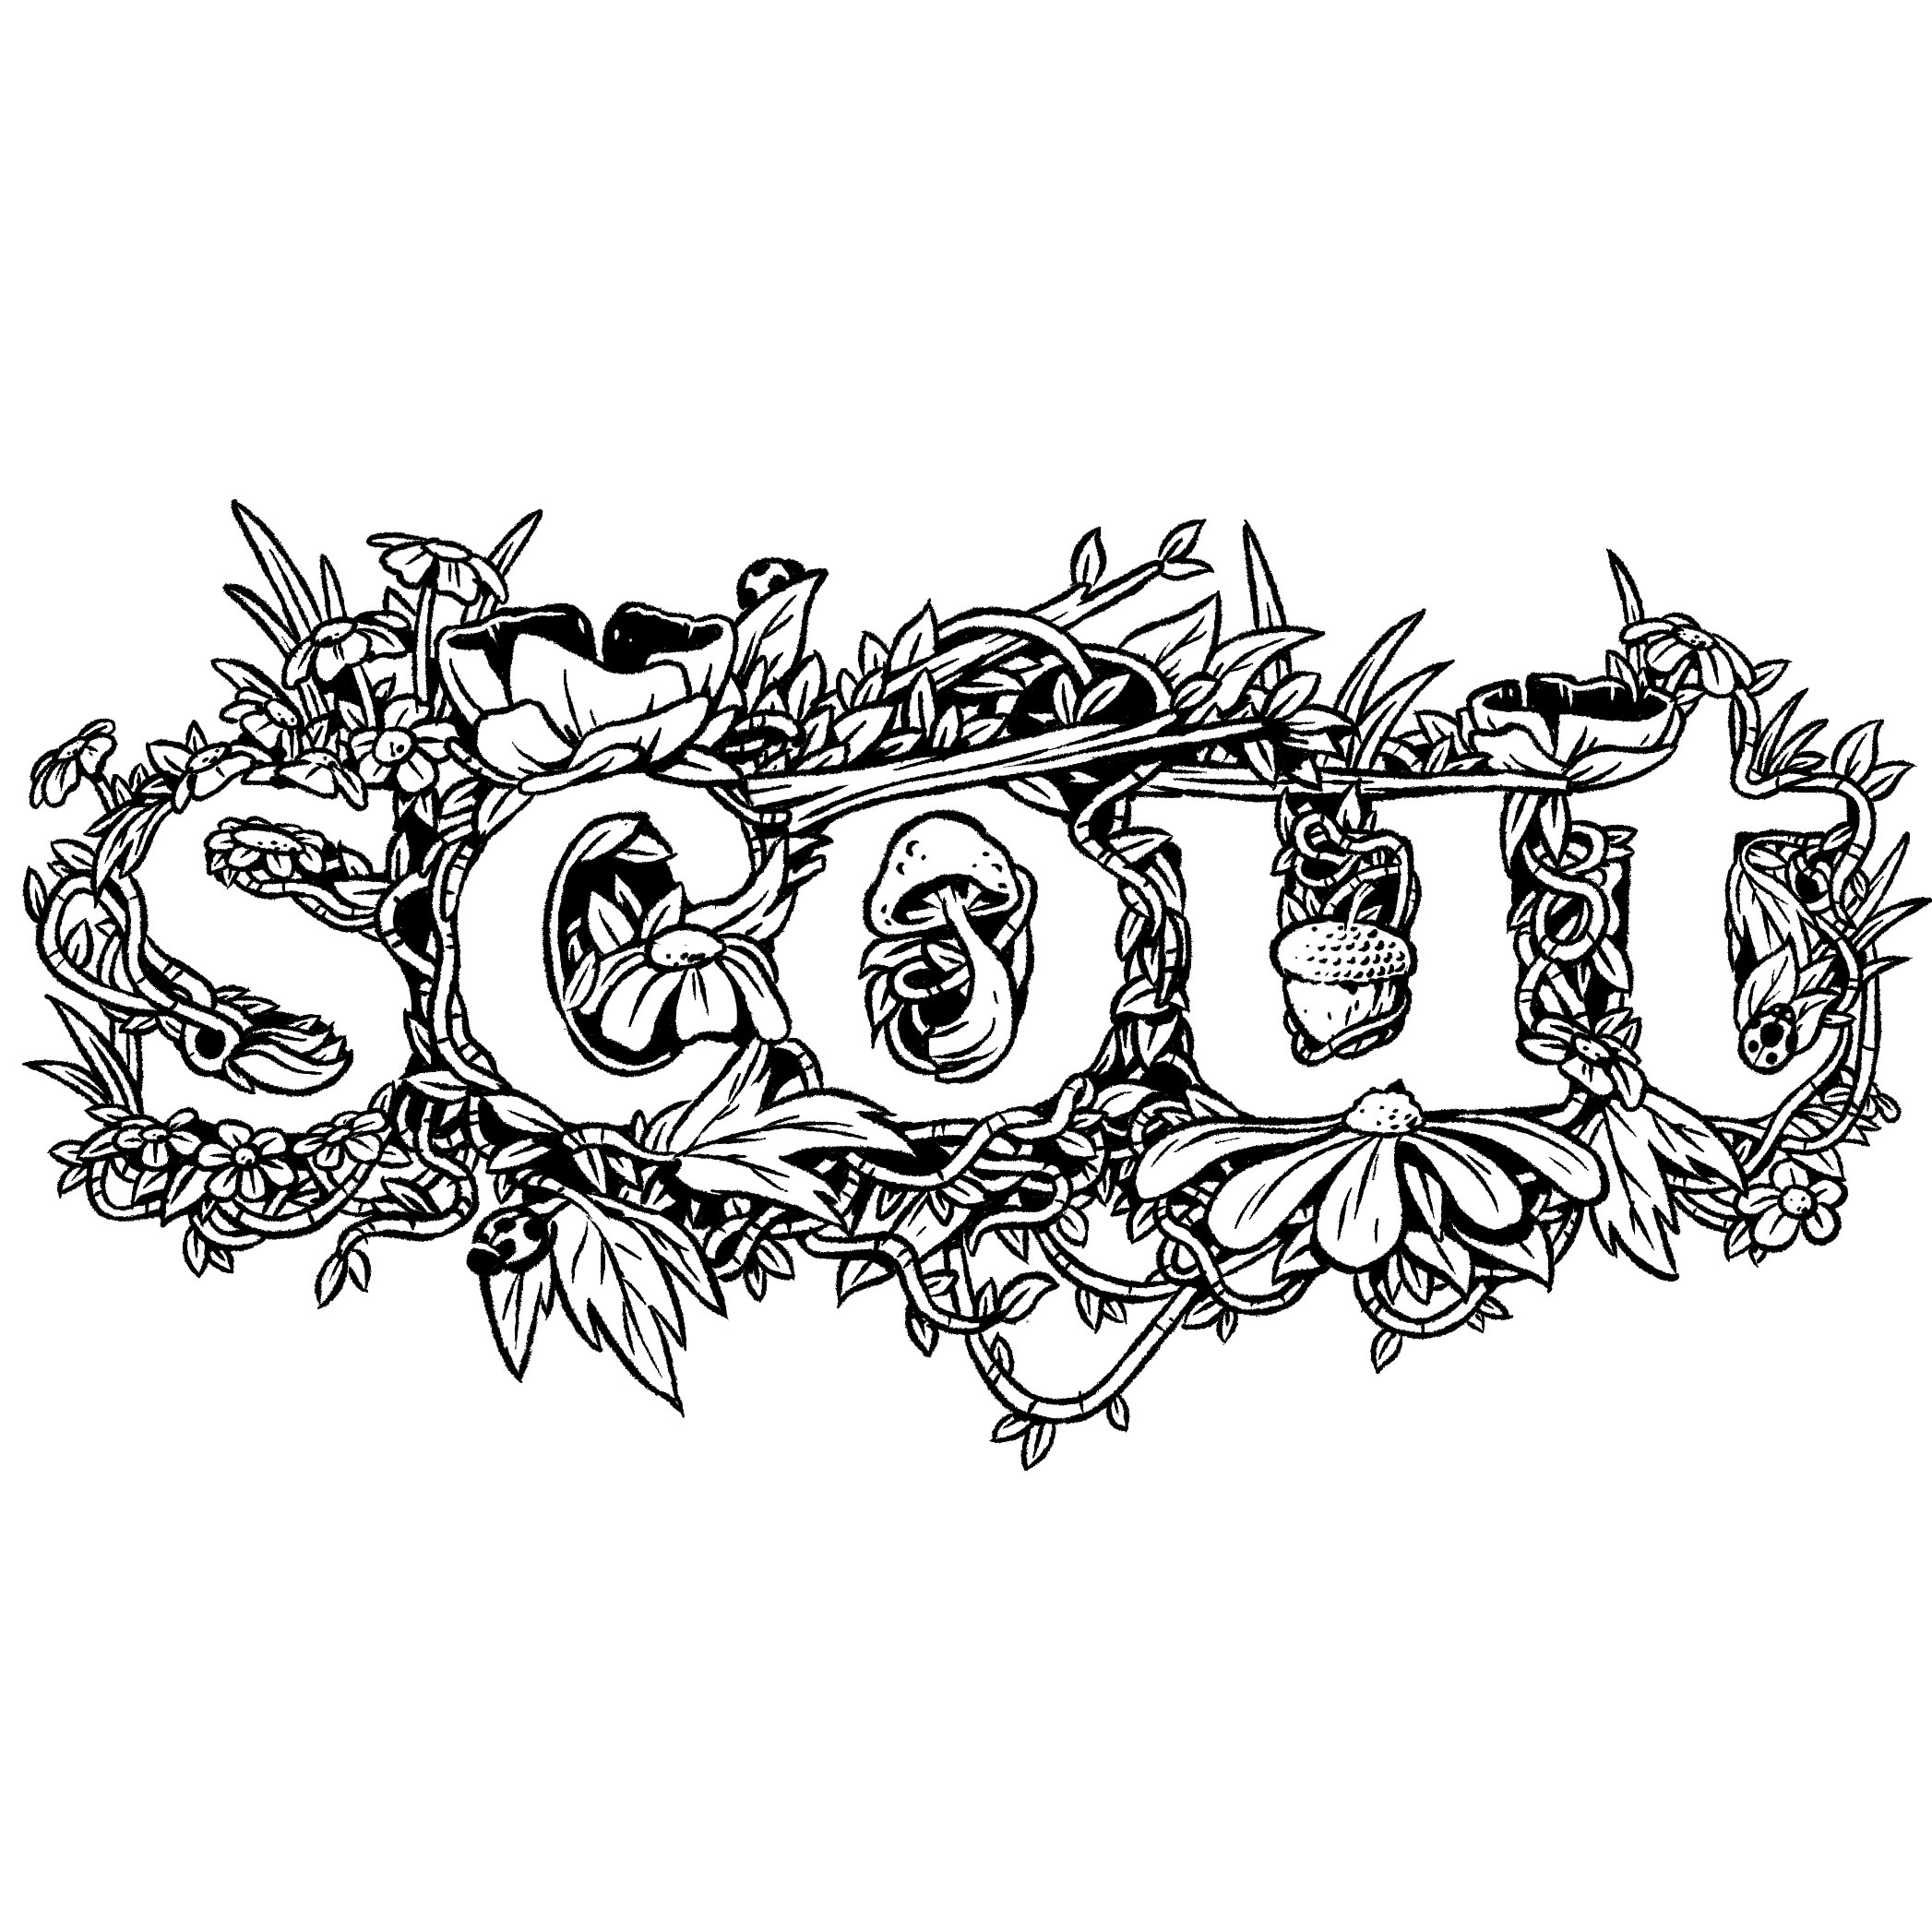 Sign up to SELL at Scout! No walk-in selling